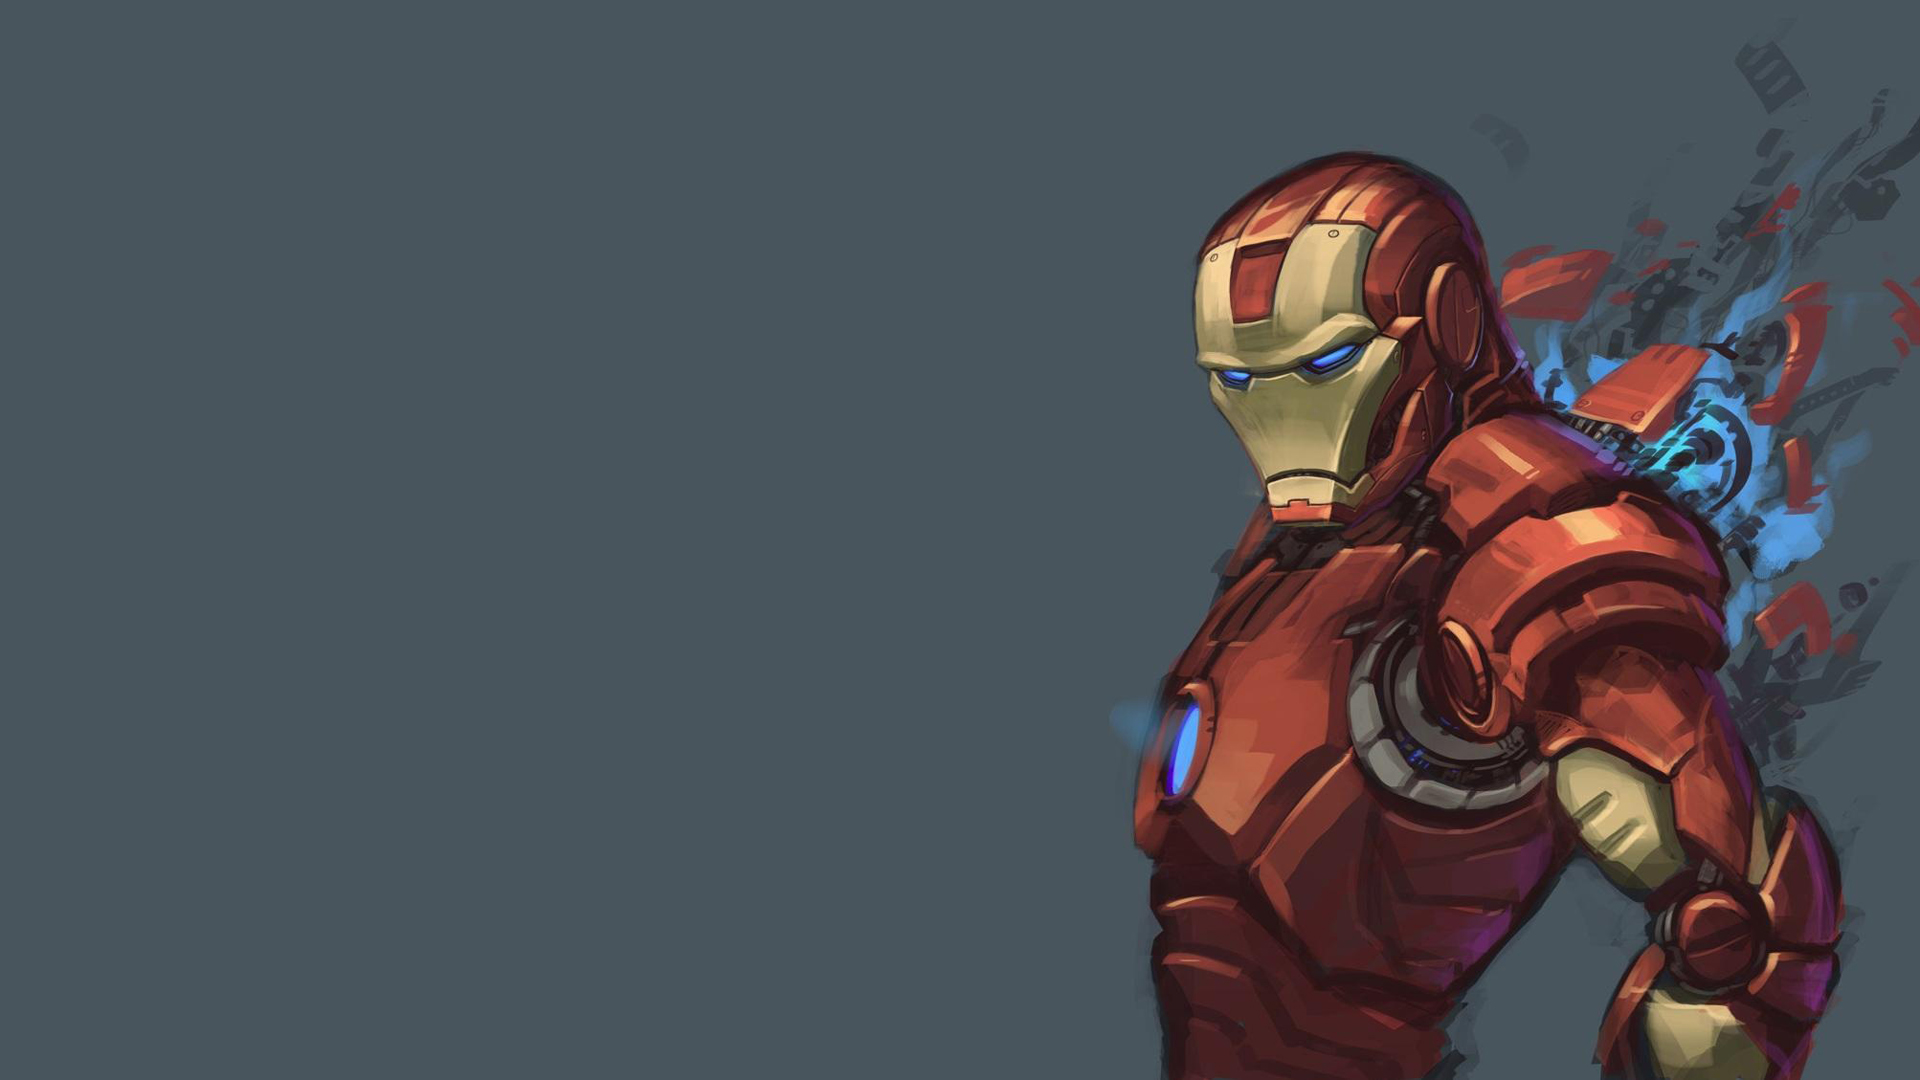 Iron Man Wallpaper 1920x1080 Iron Man Comics Marvel Comics 1920x1080